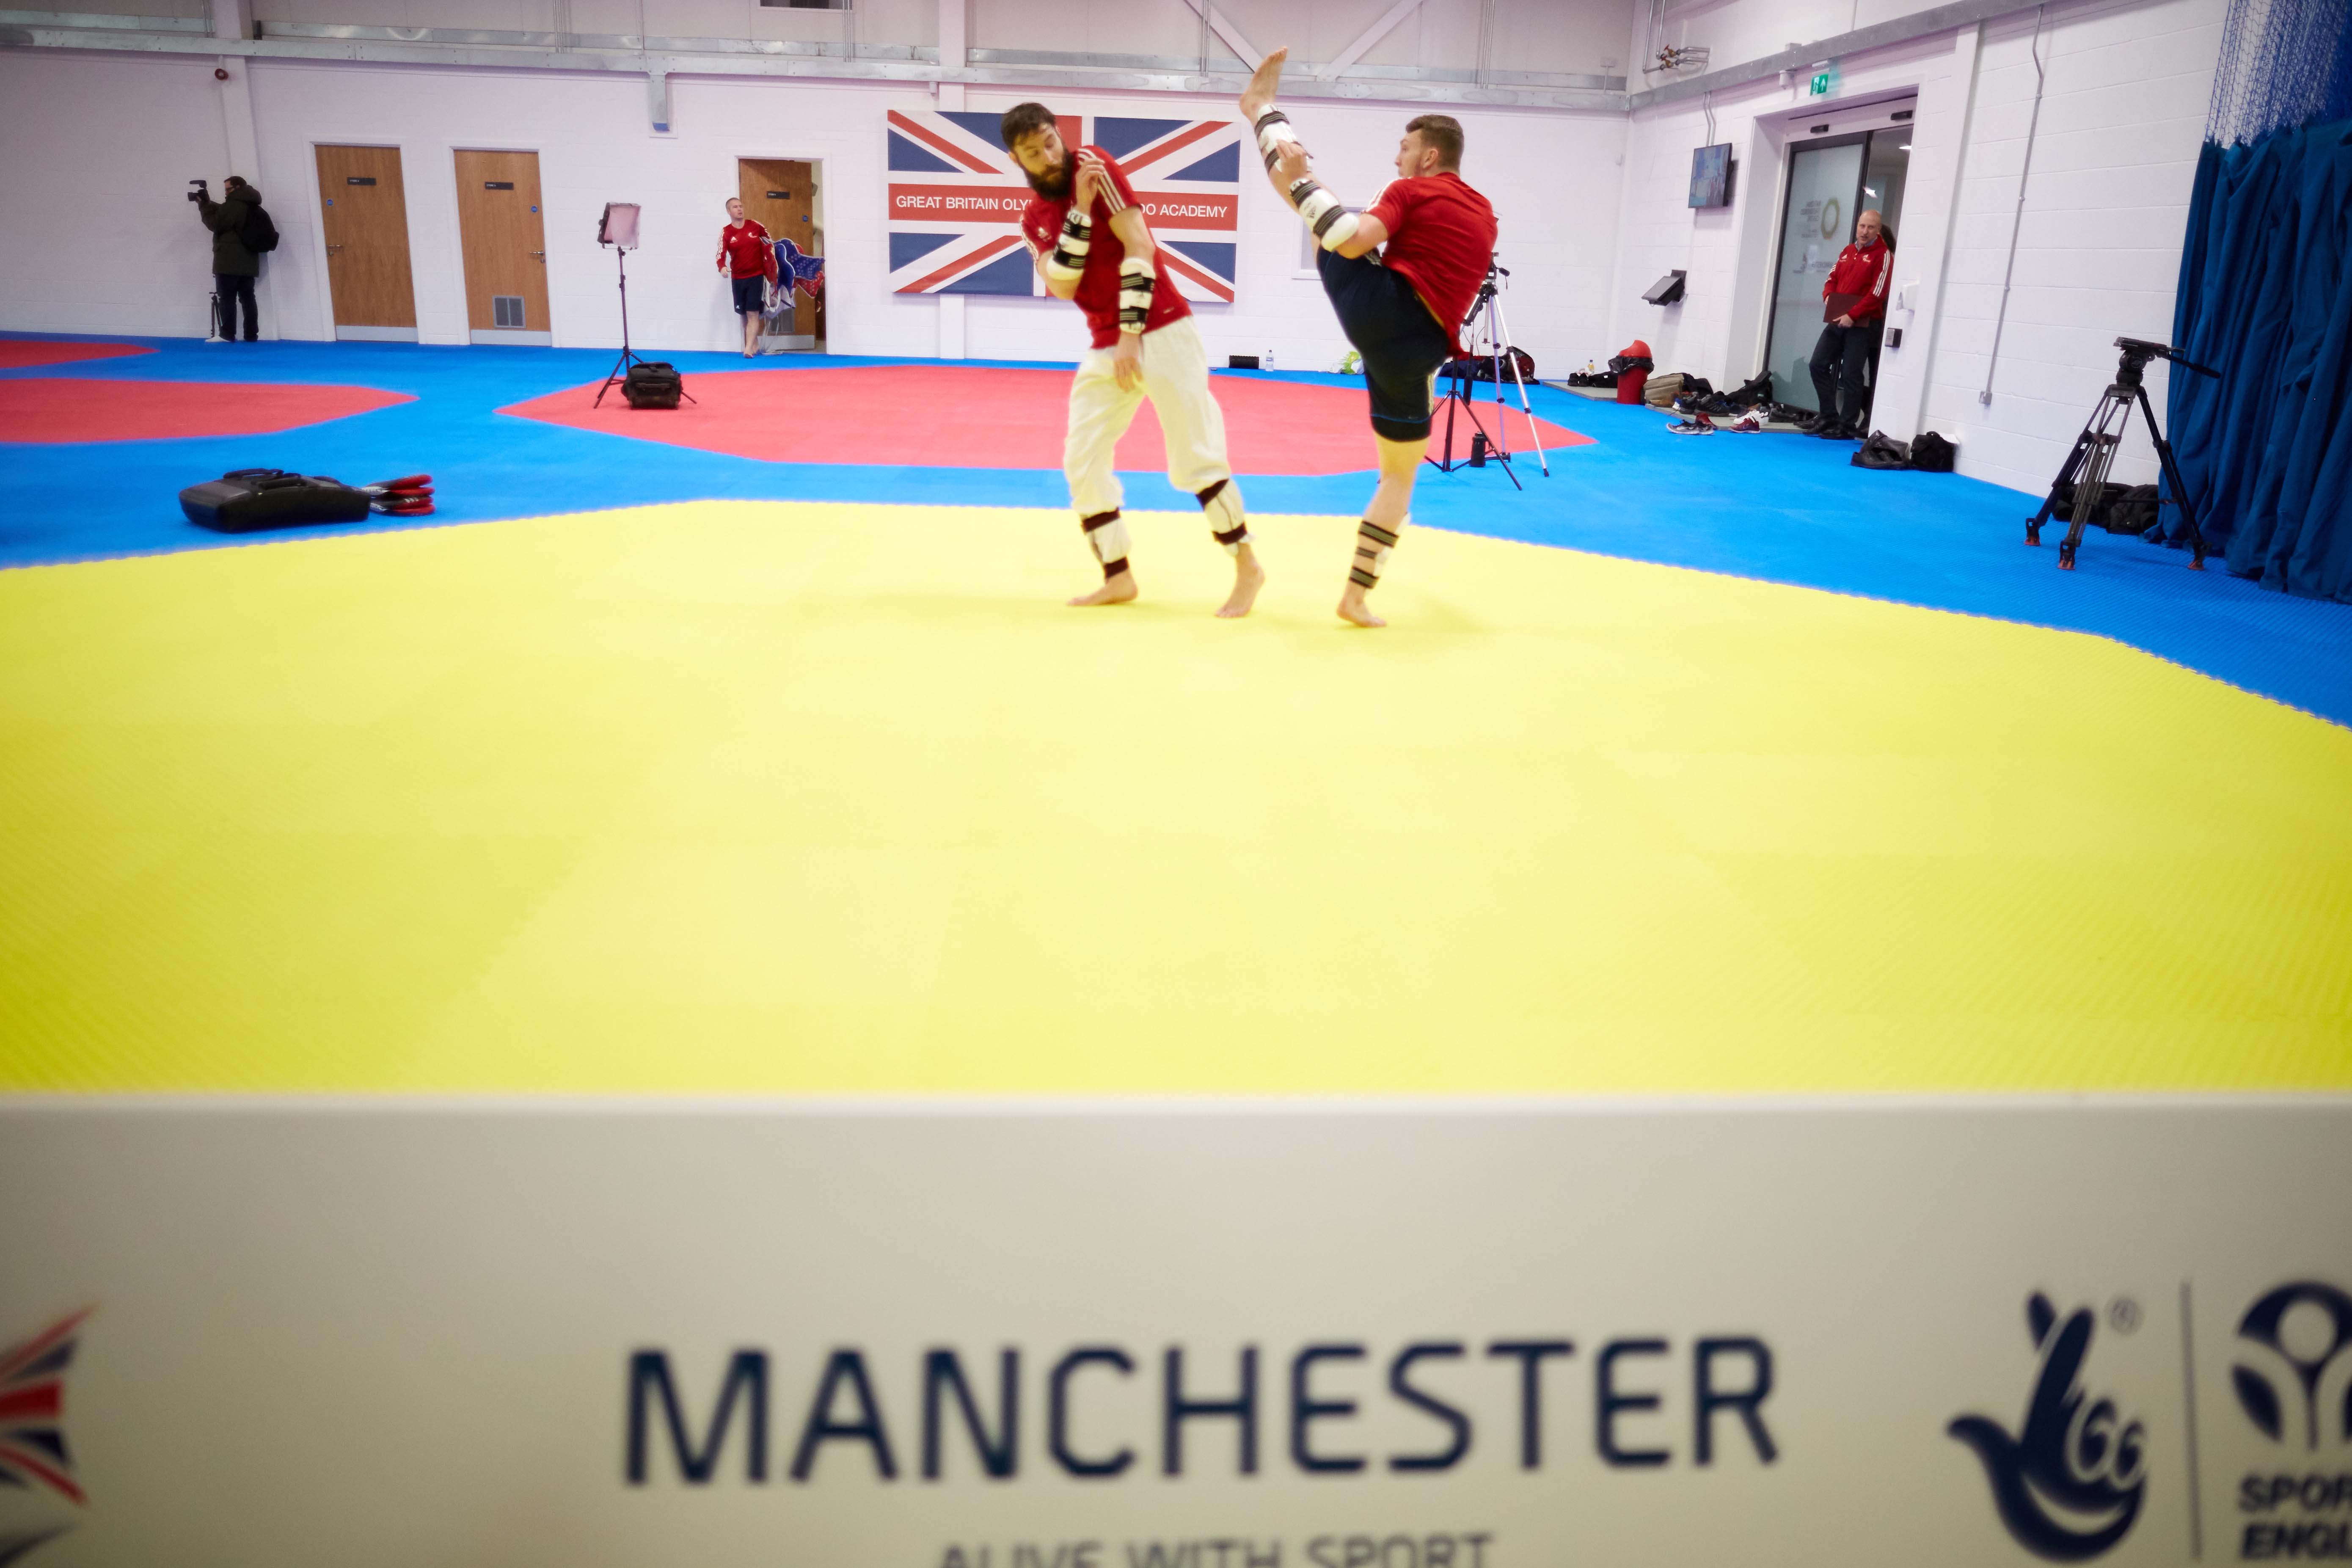 National Taekwondo Centre in Manchester official opening of the new Centre after a £3m transformation.